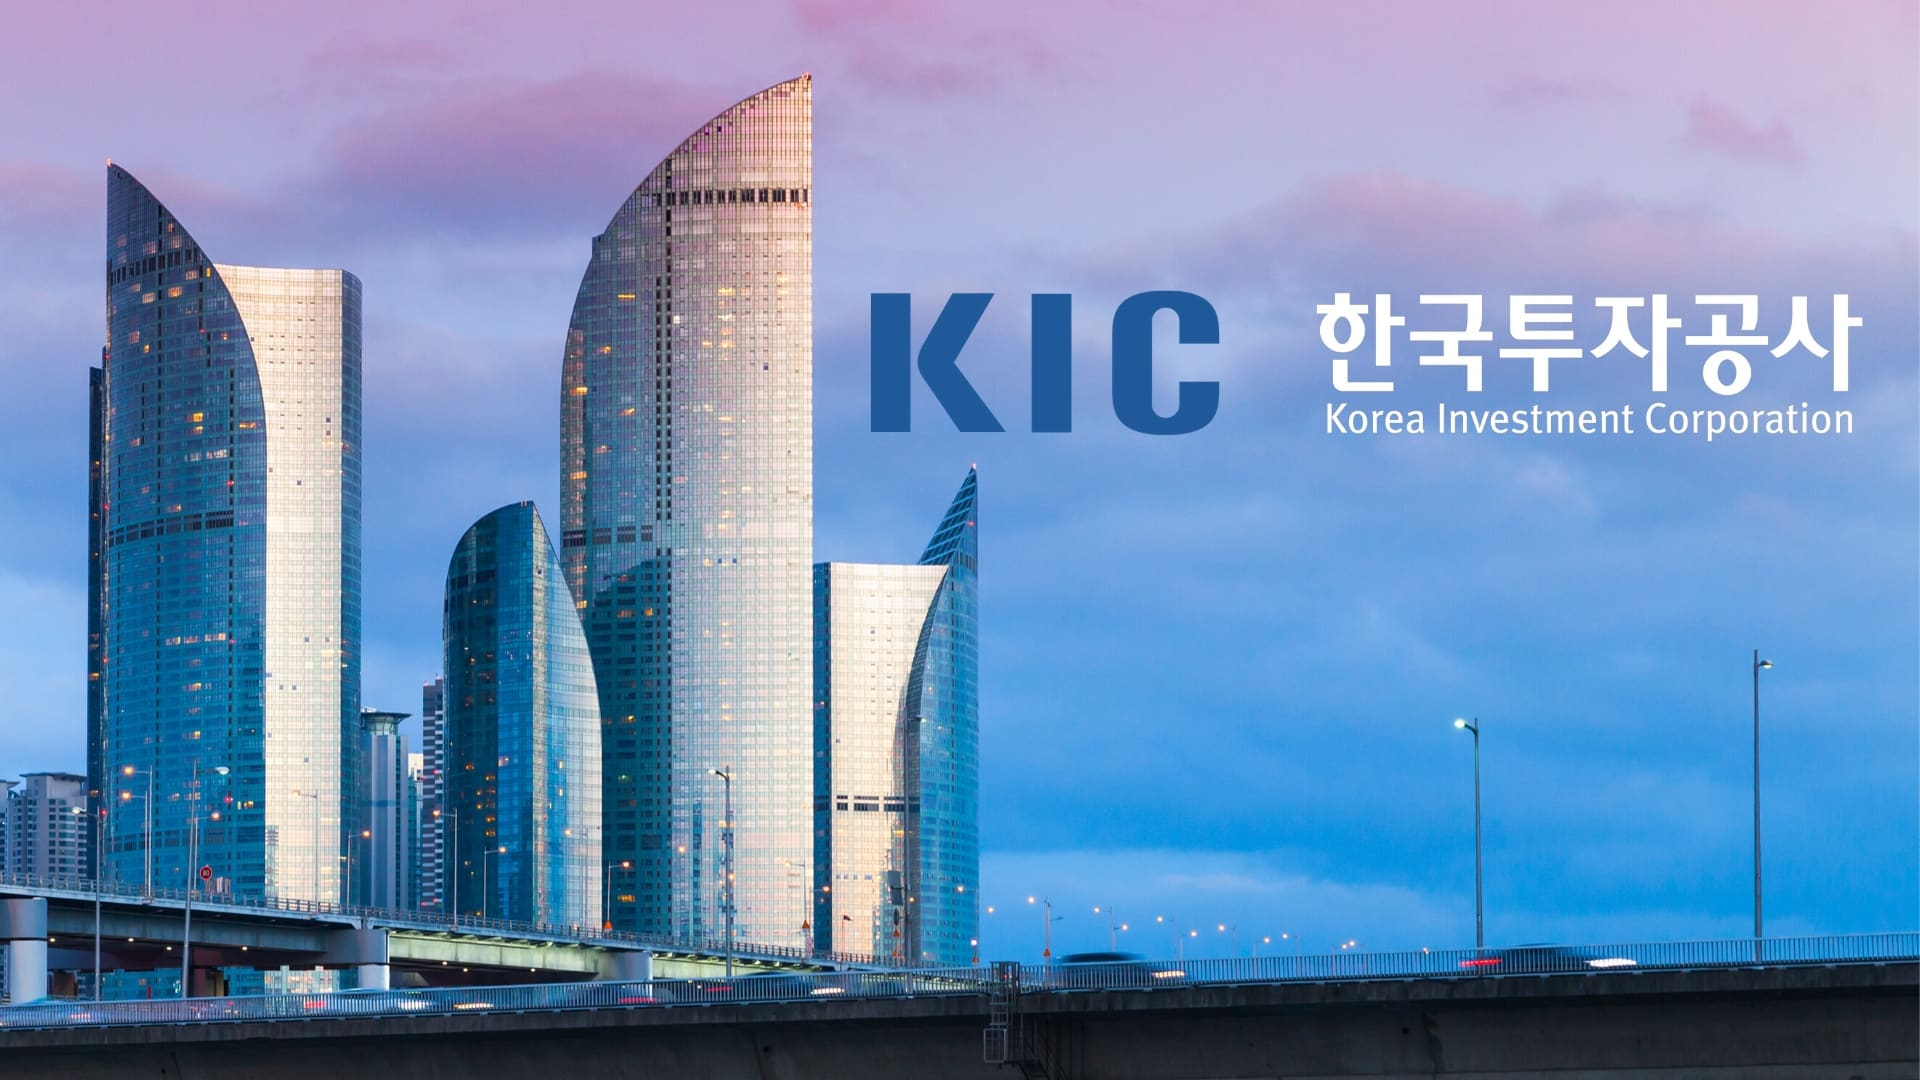 Korea's Wealth Funds of $145 Billion Moves Towards Fixed Income Assets